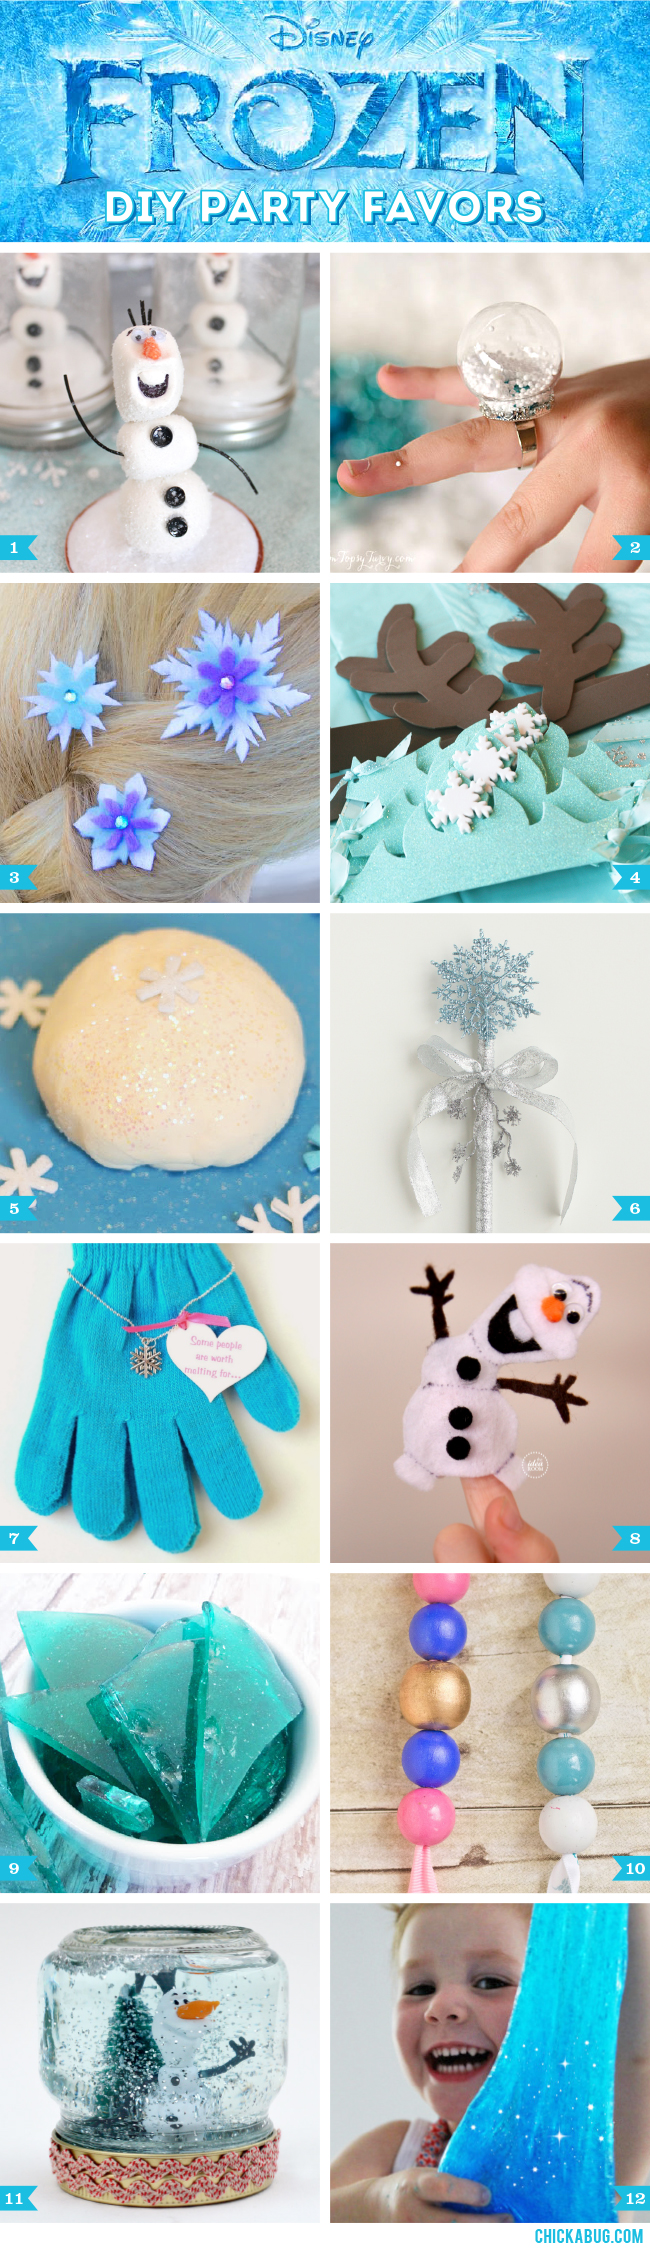 Diy Frozen Party Favors Bing Images